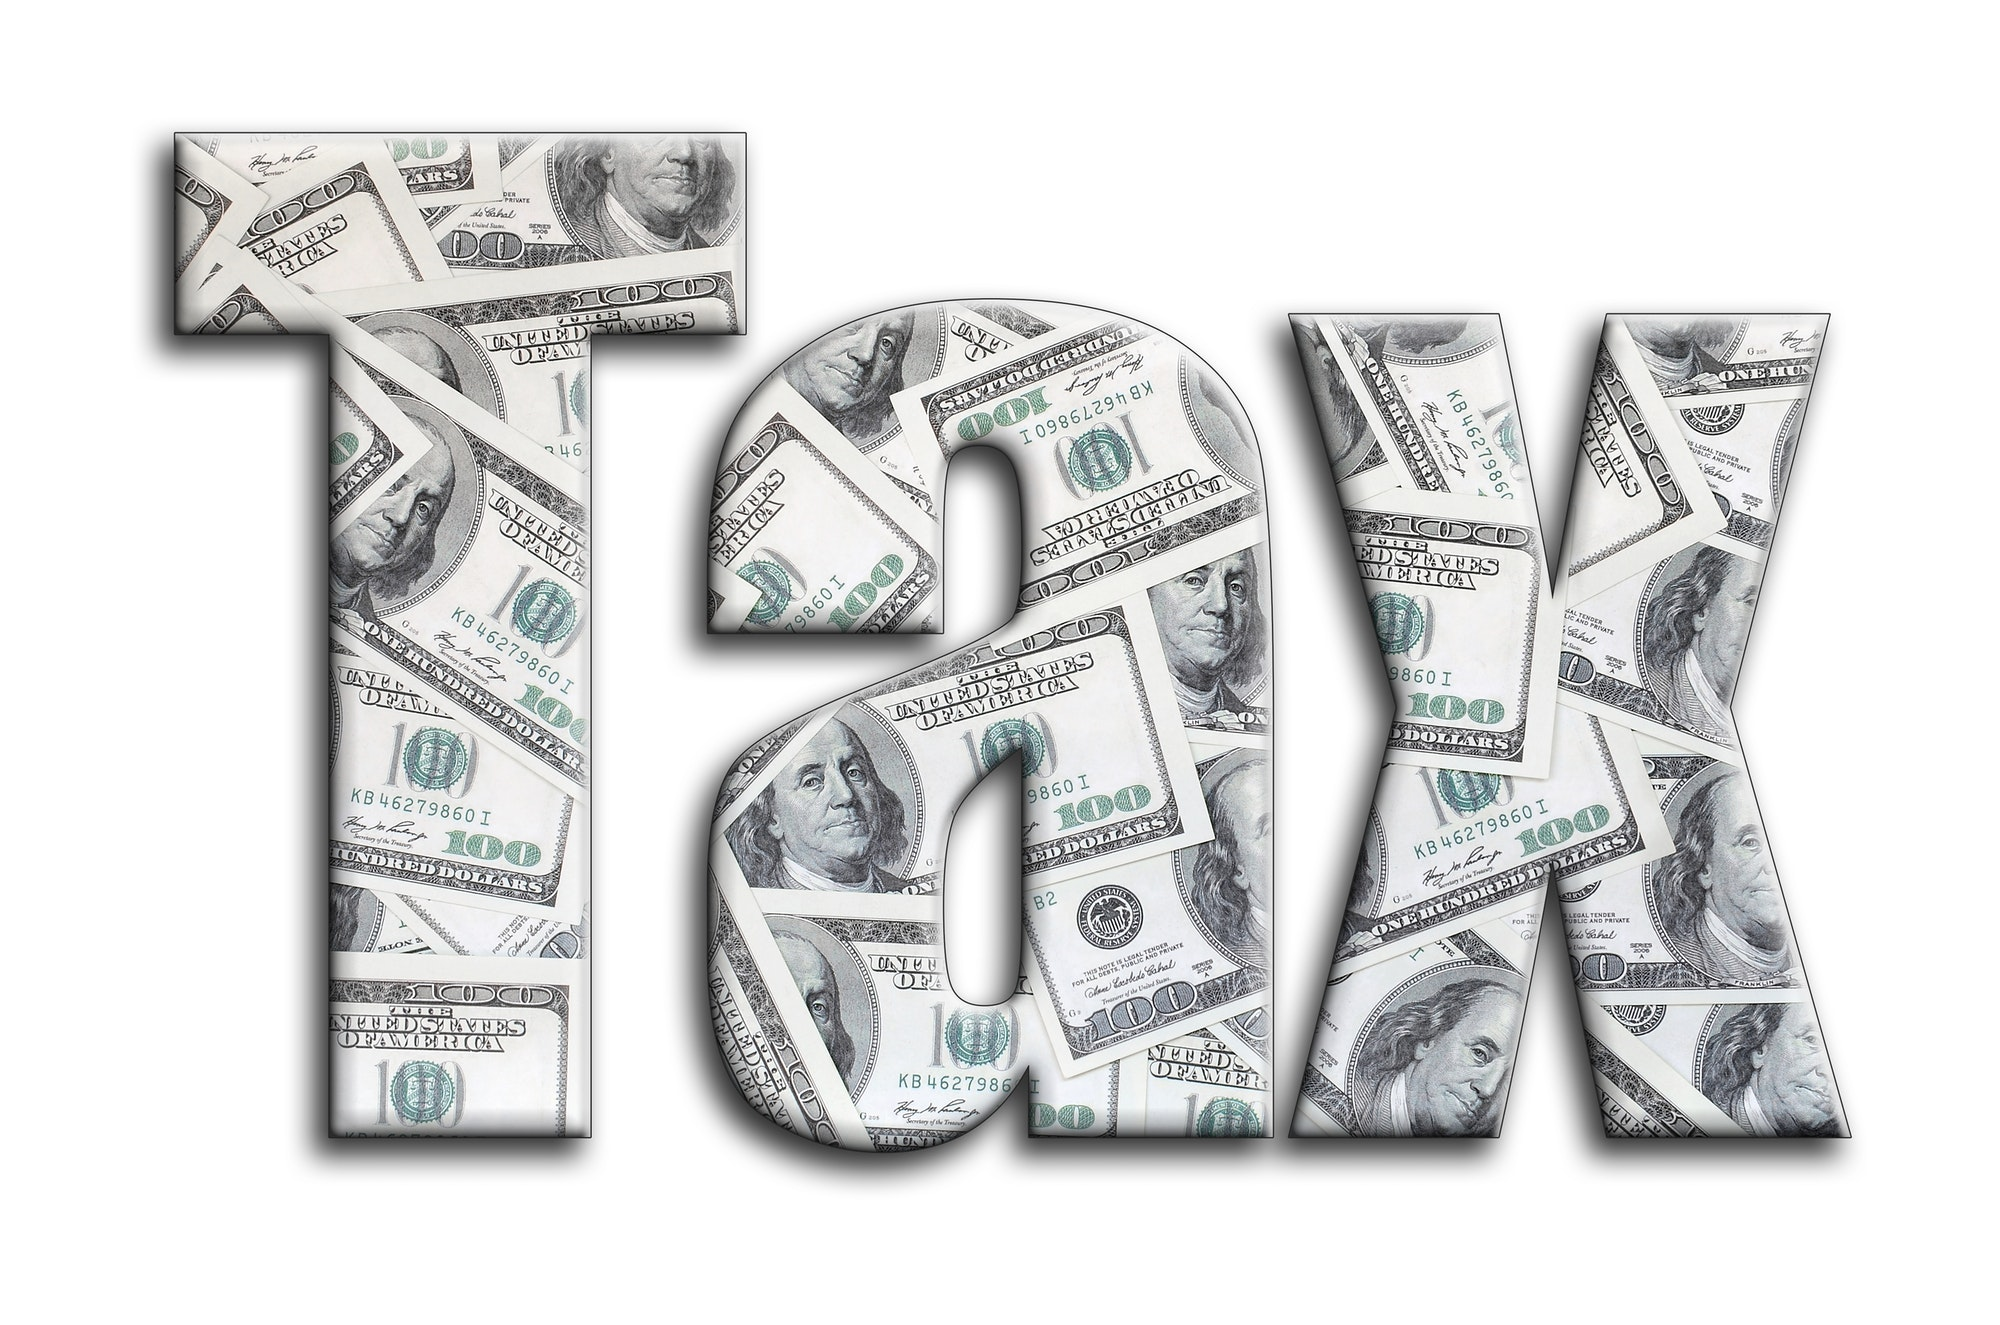 Tax. The inscription has a texture of the photography, which depicts a lot of US dollar bills.